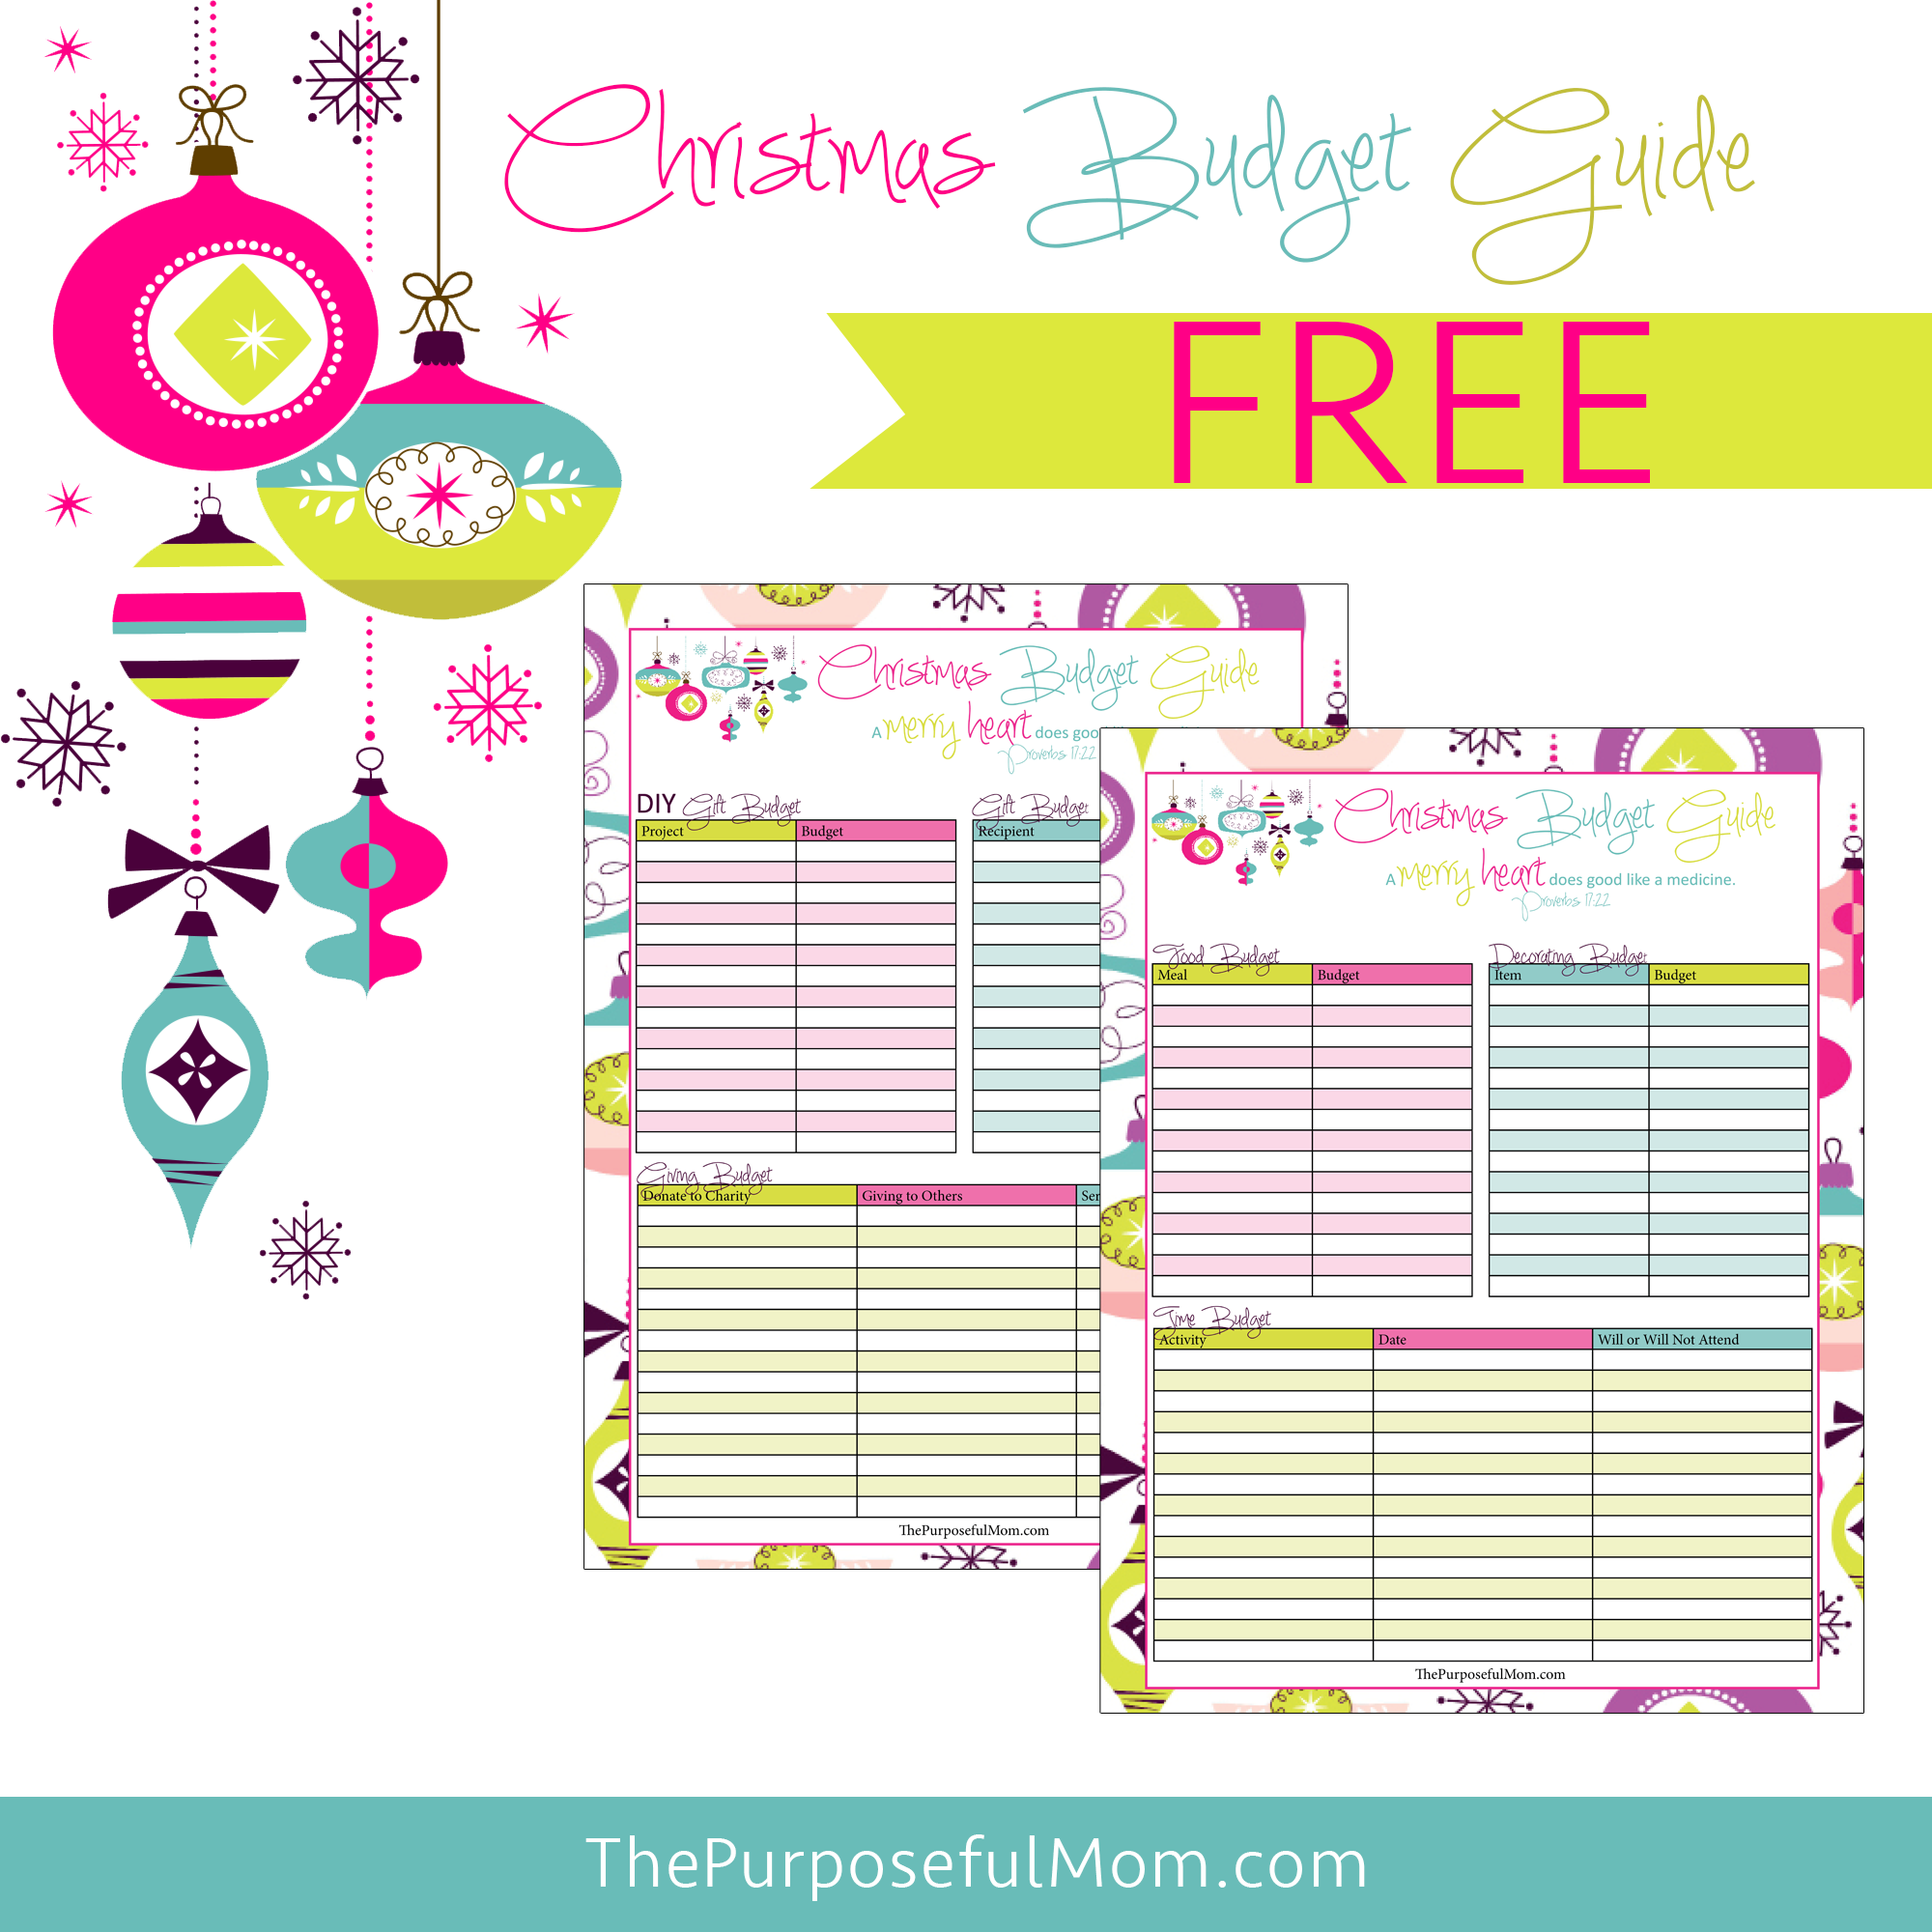 Free Printable Christmas Budget Planner - The Purposeful Mom